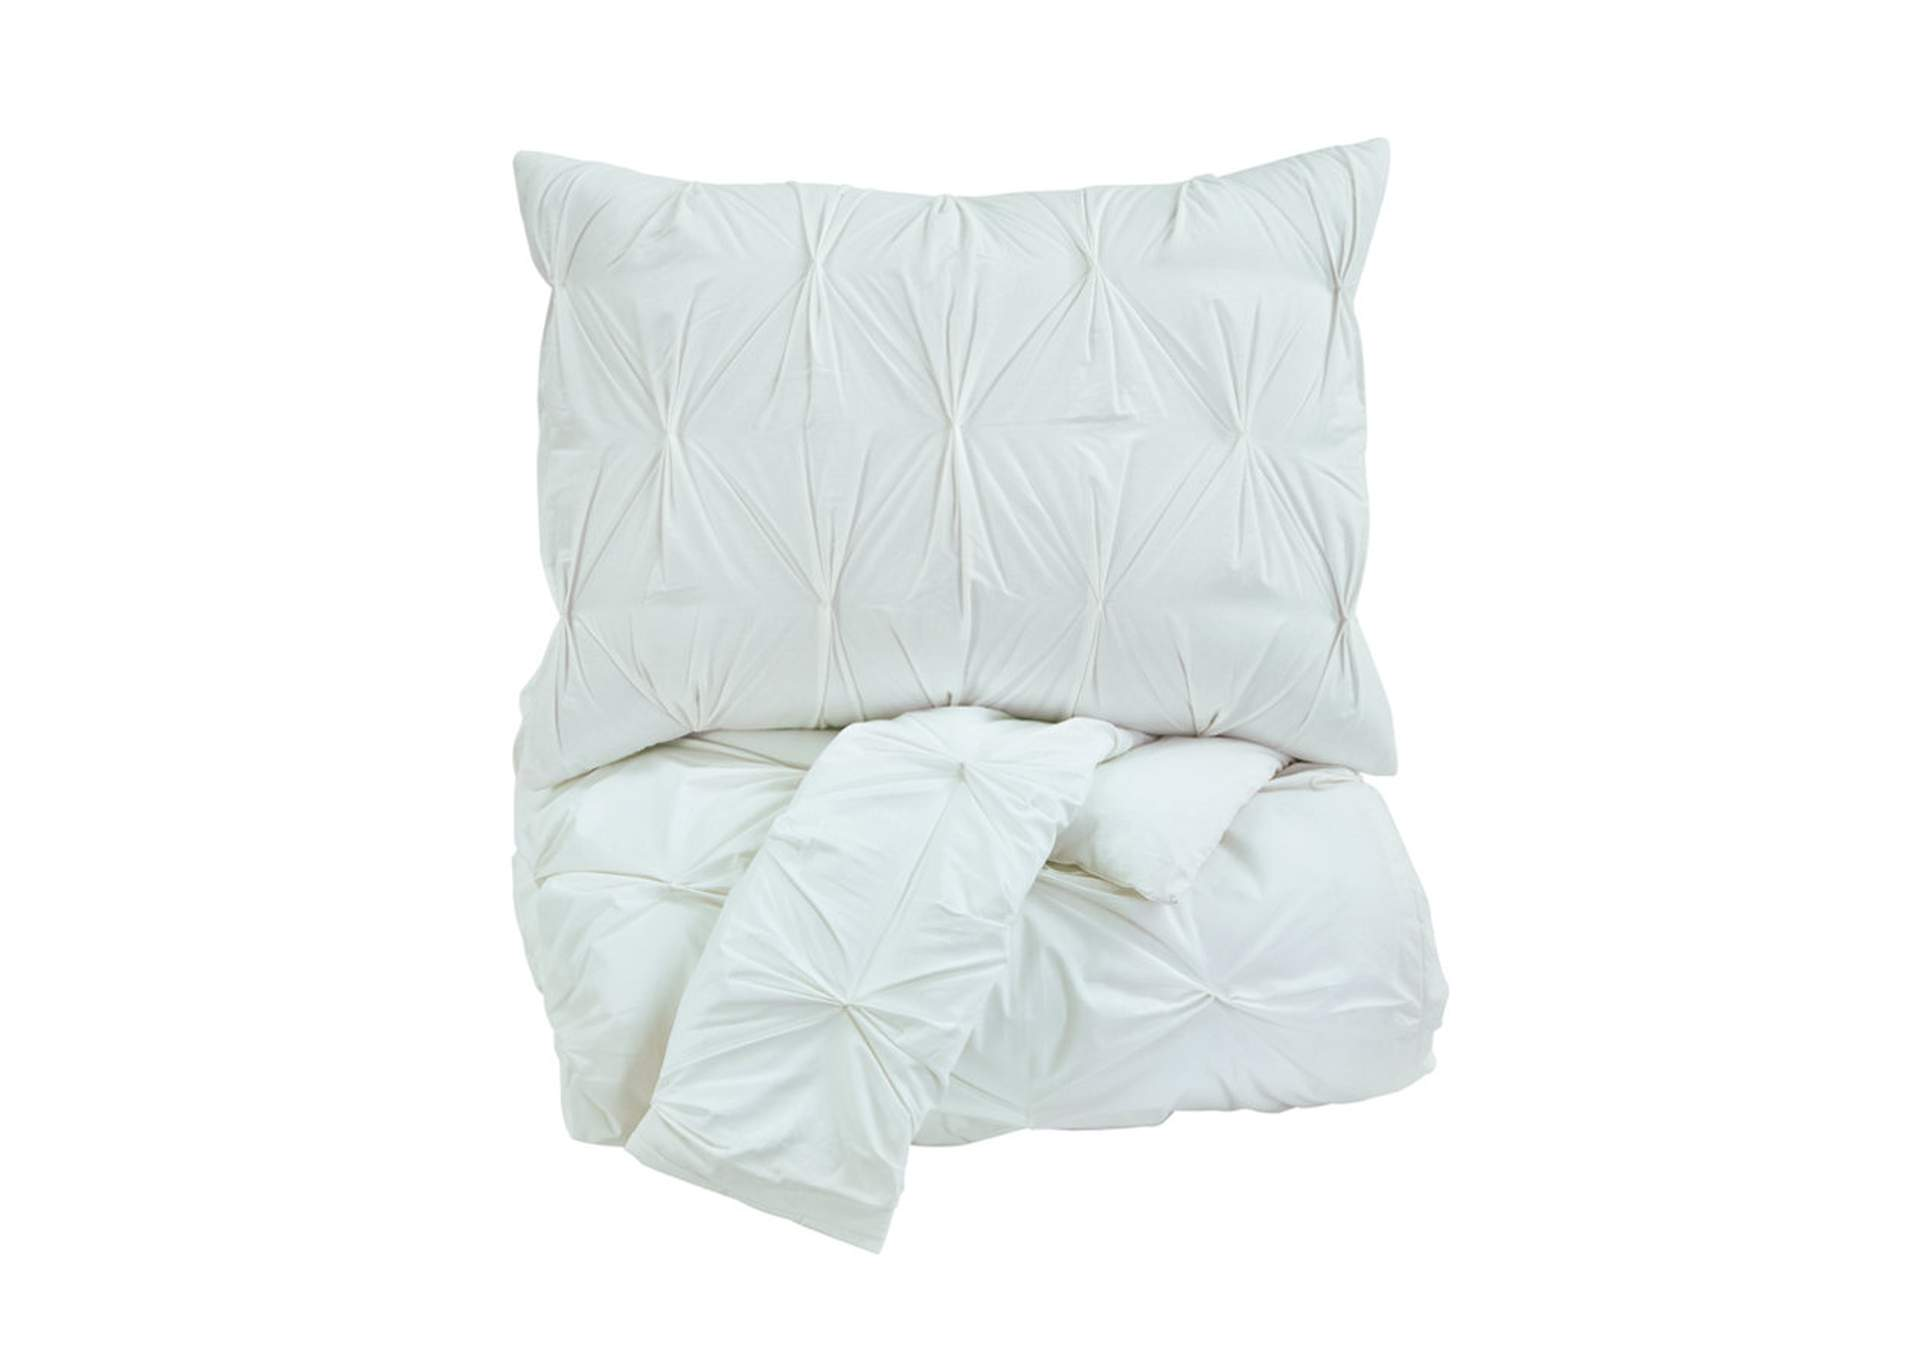 Rimy White King Comforter Set,Signature Design By Ashley